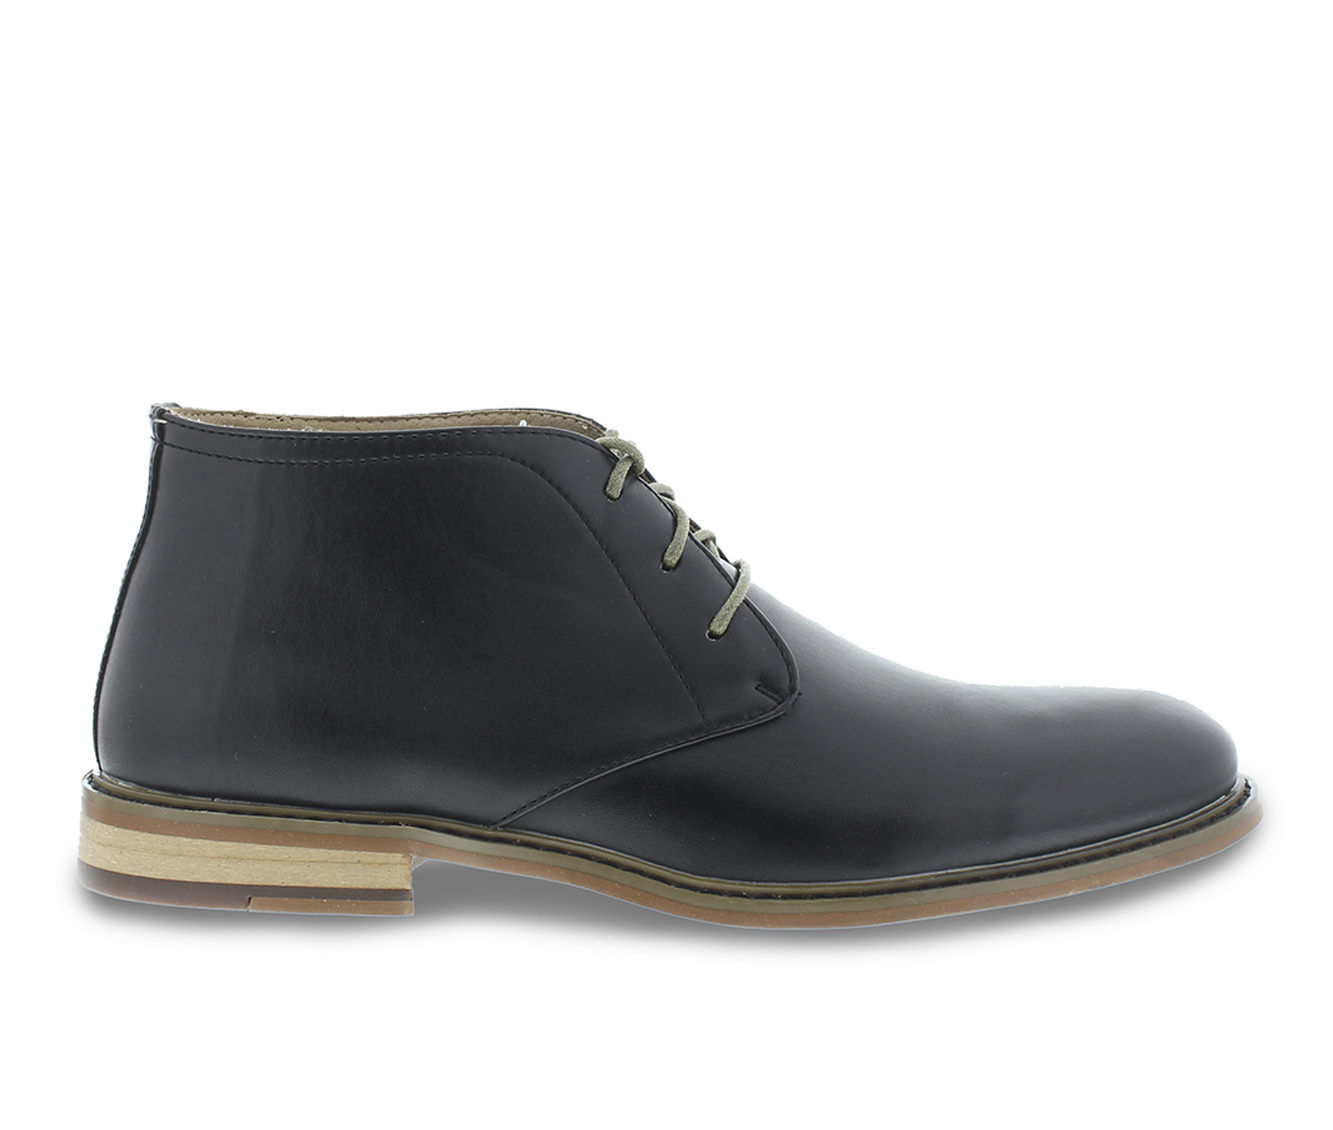 cheapest new arrivals Men's Deer Stags Seattle Chukka Boots Black